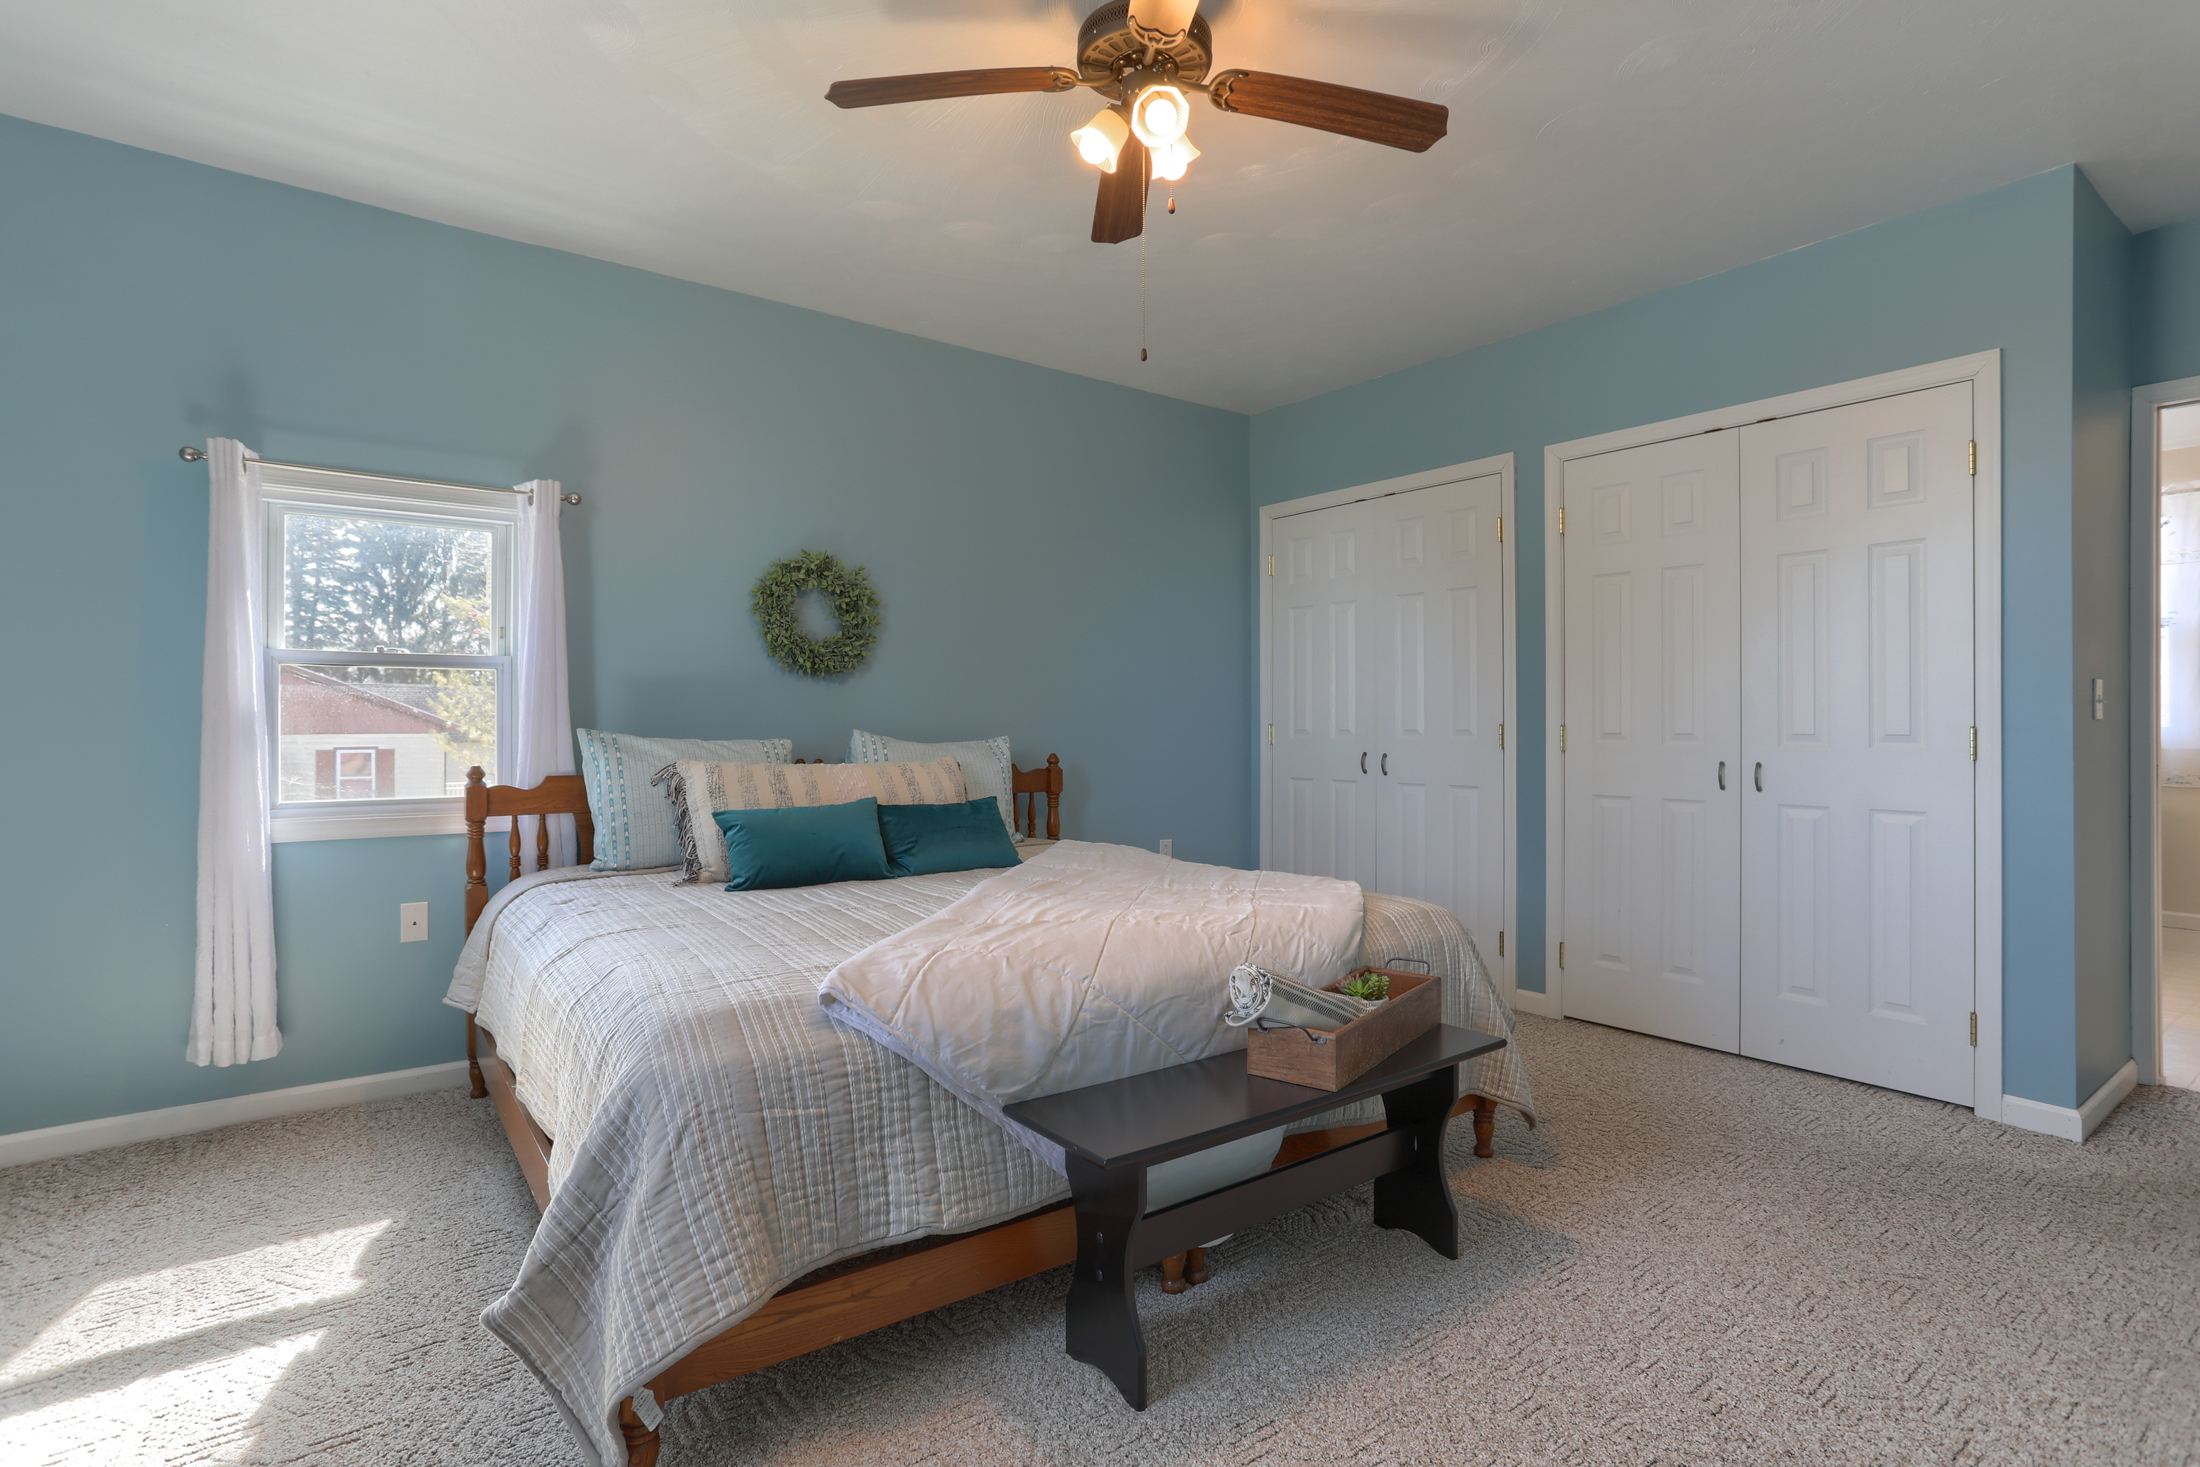 285 Strack Drive - Master Bedroom with 2 closets